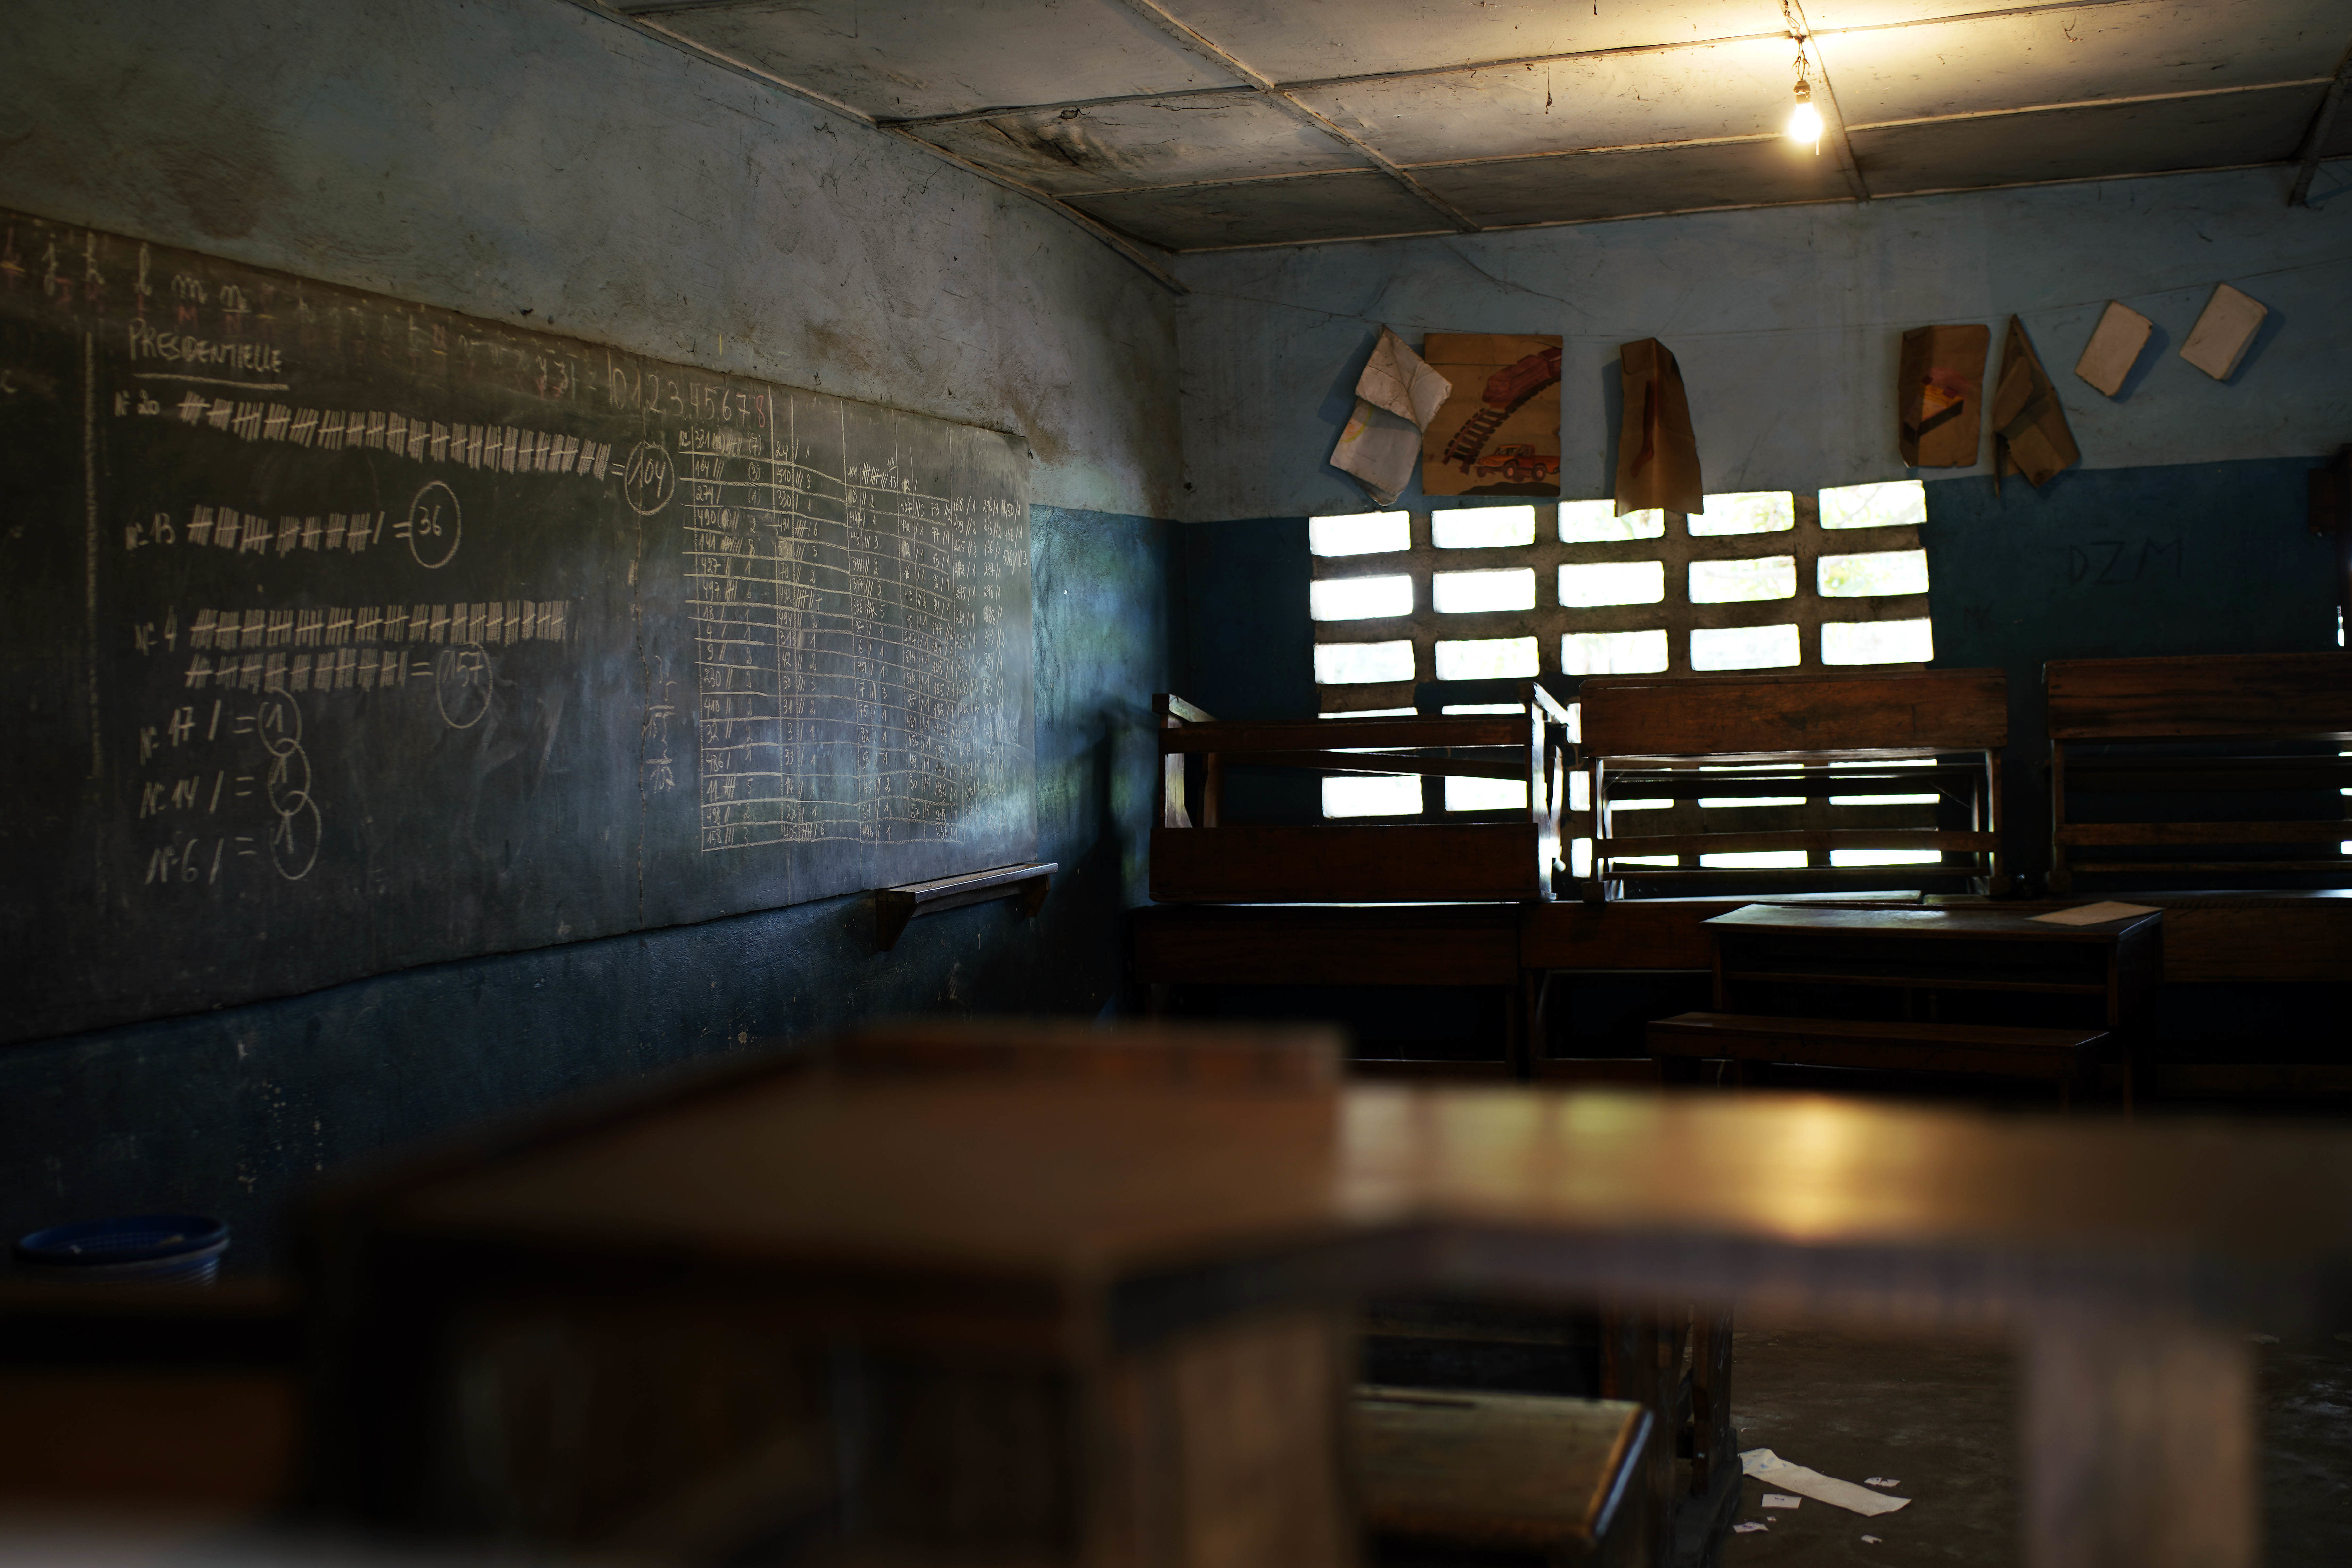 This photo taken Friday Jan. 4, 2019 shows a blackboard with presidential election results for that specific polling station, in a school in Kinshasa, Congo. Congo faces what could be its first democratic, peaceful transfer of power since independence from Belgium in 1960, but election observers and the opposition have raised numerous concerns about voting irregularities as the country chooses a successor to longtime President Joseph Kabila. (AP Photo/Jerome Delay)